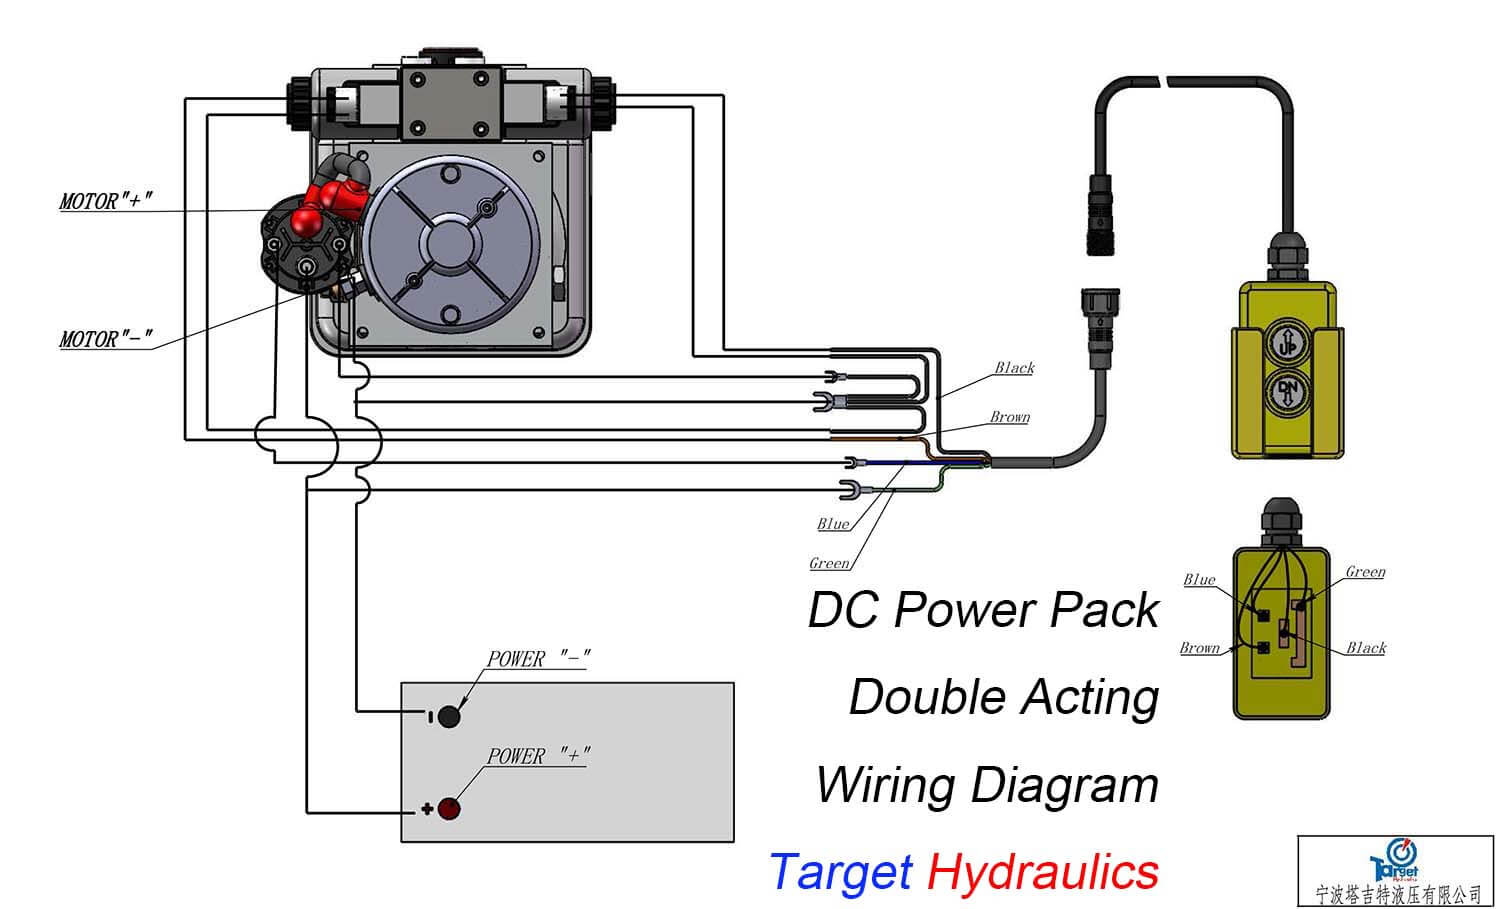 How to Wire_DC Motor Double Acting Power Pack how to wire hydraulic power pack,power unit diagram design Residential Electrical Wiring Diagrams at alyssarenee.co